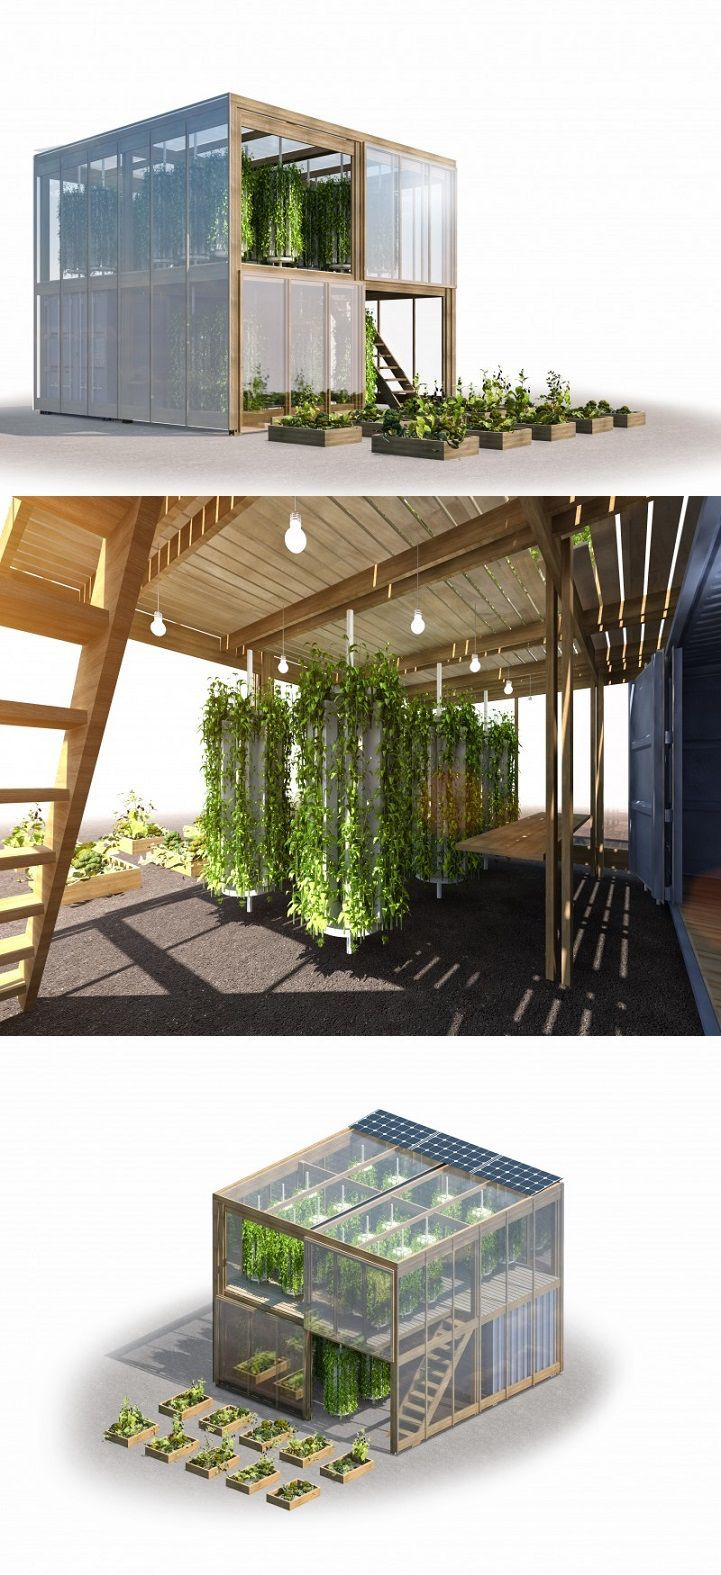 At just 538 square feet, this vertical garden is specifically designed to fit into tight, urban spaces.